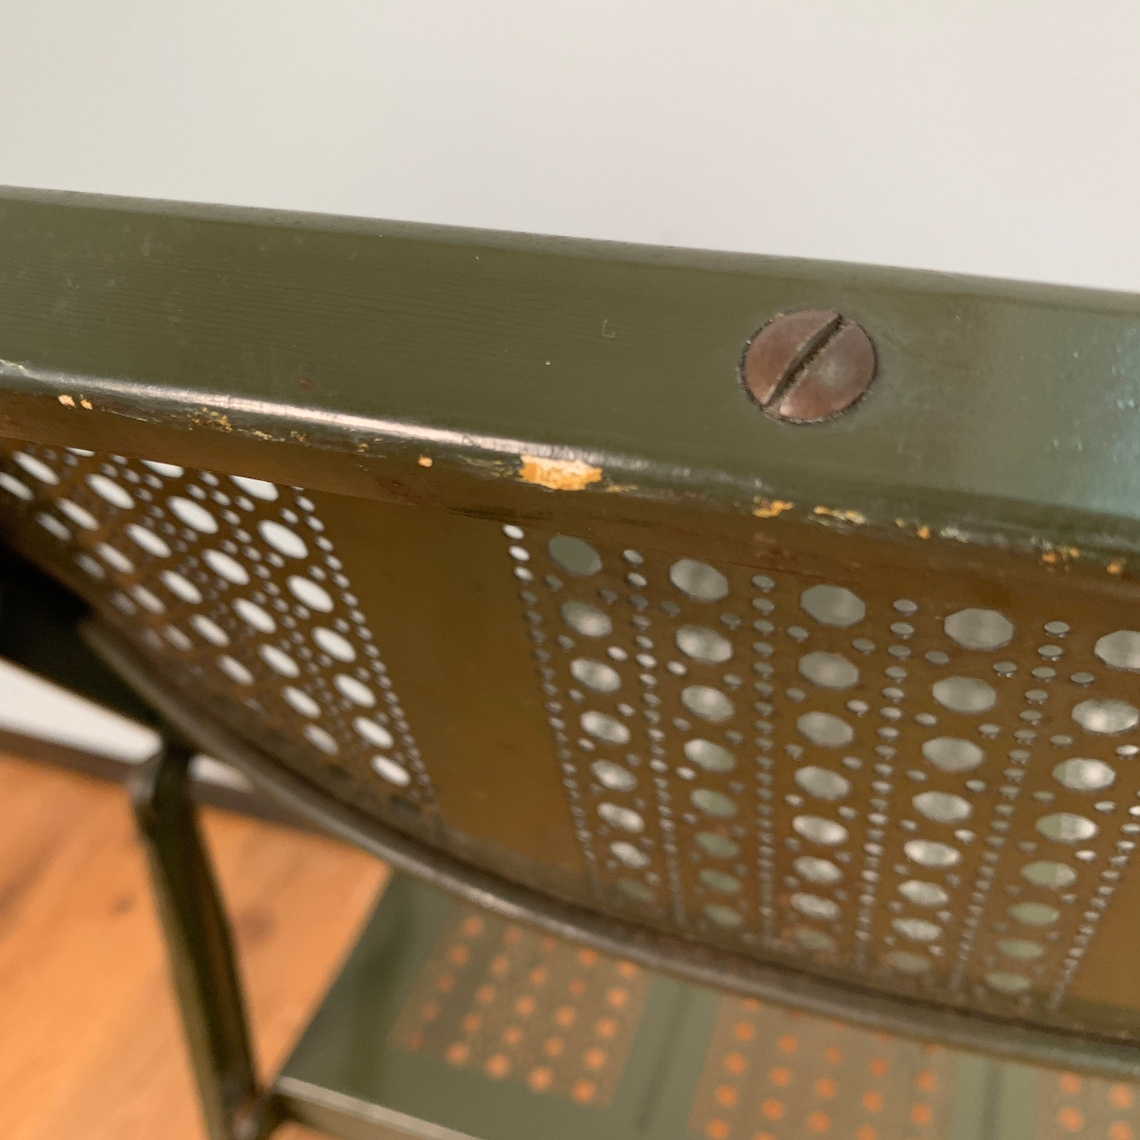 Vintage Industrial factory green folding steel chairs - Quantity available